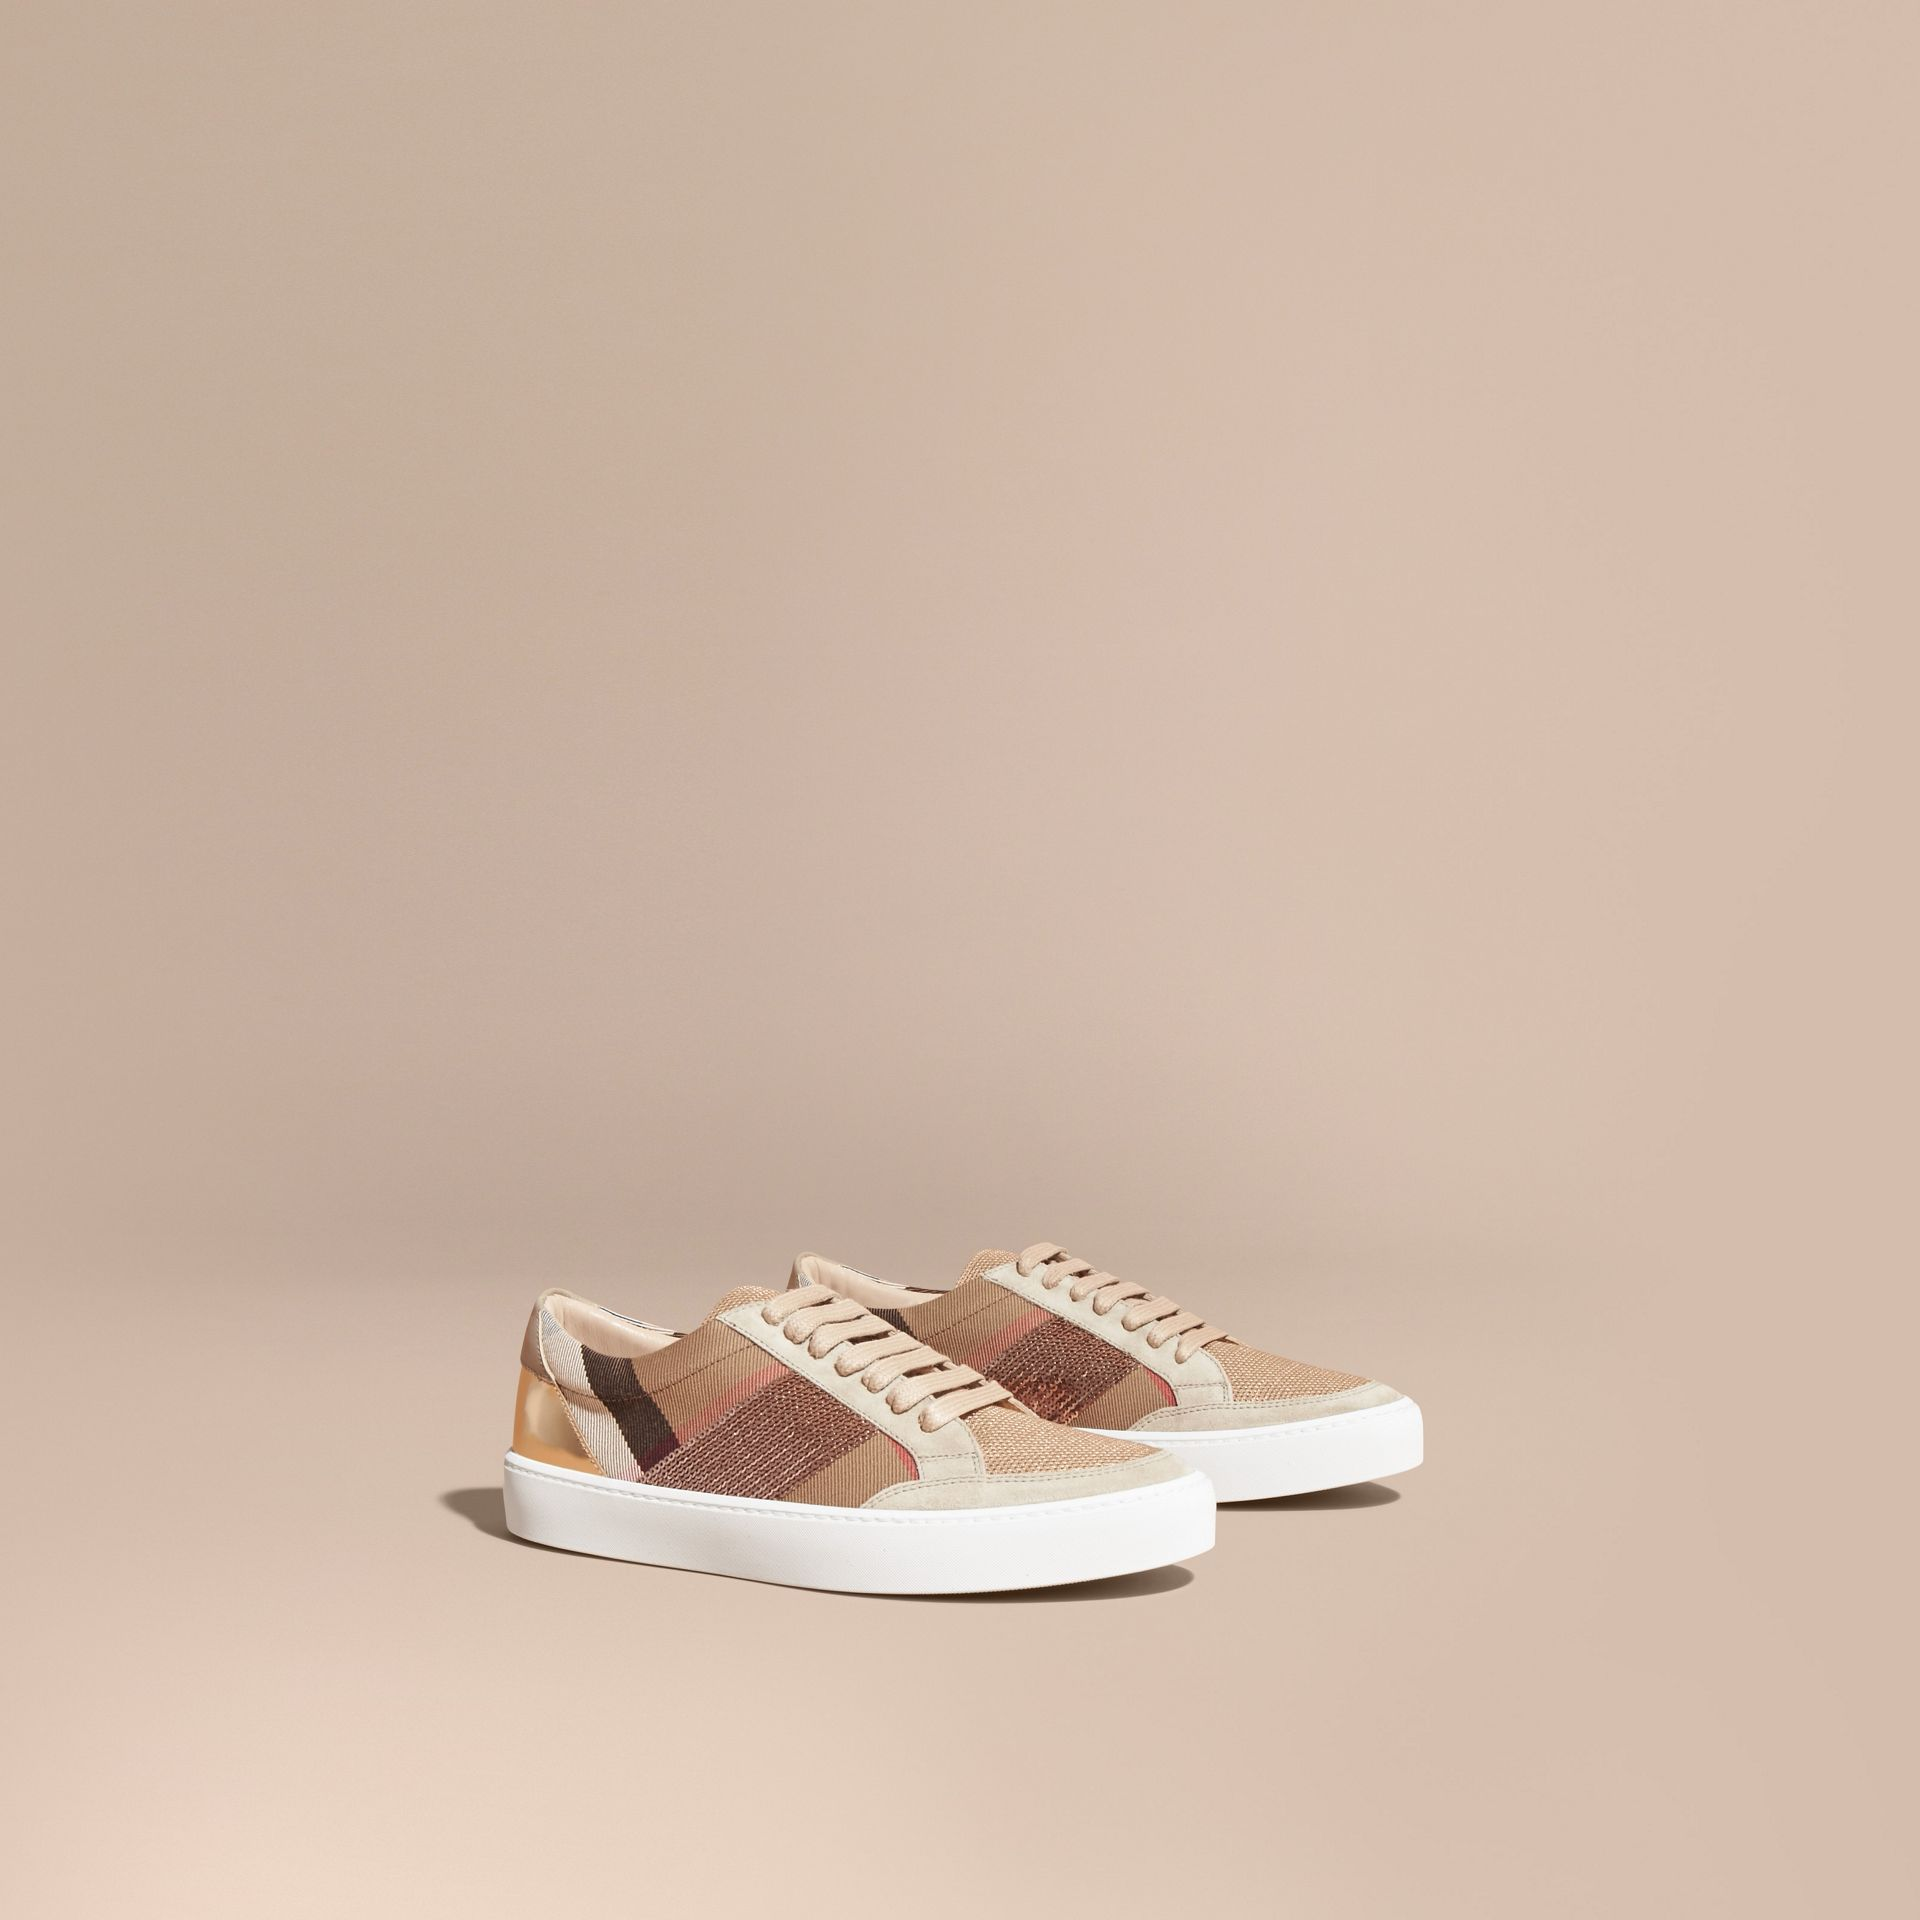 House check/pale pink House Check, Sequin and Leather Sneakers Check/pale Pink - gallery image 1